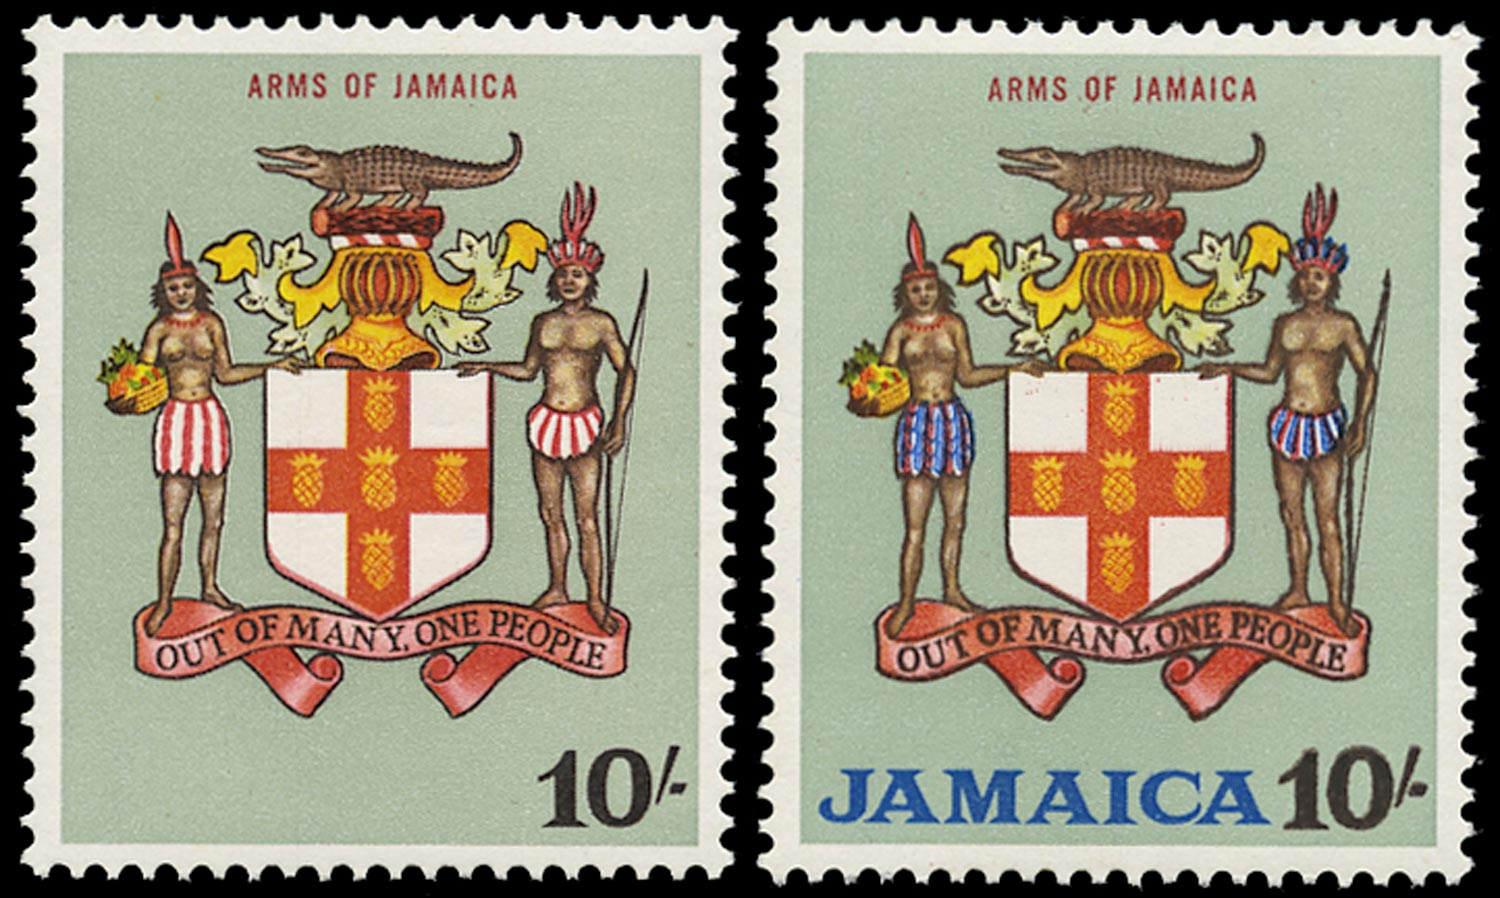 JAMAICA 1964  SG231a Mint unmounted QEII 10s Arms error blue omitted